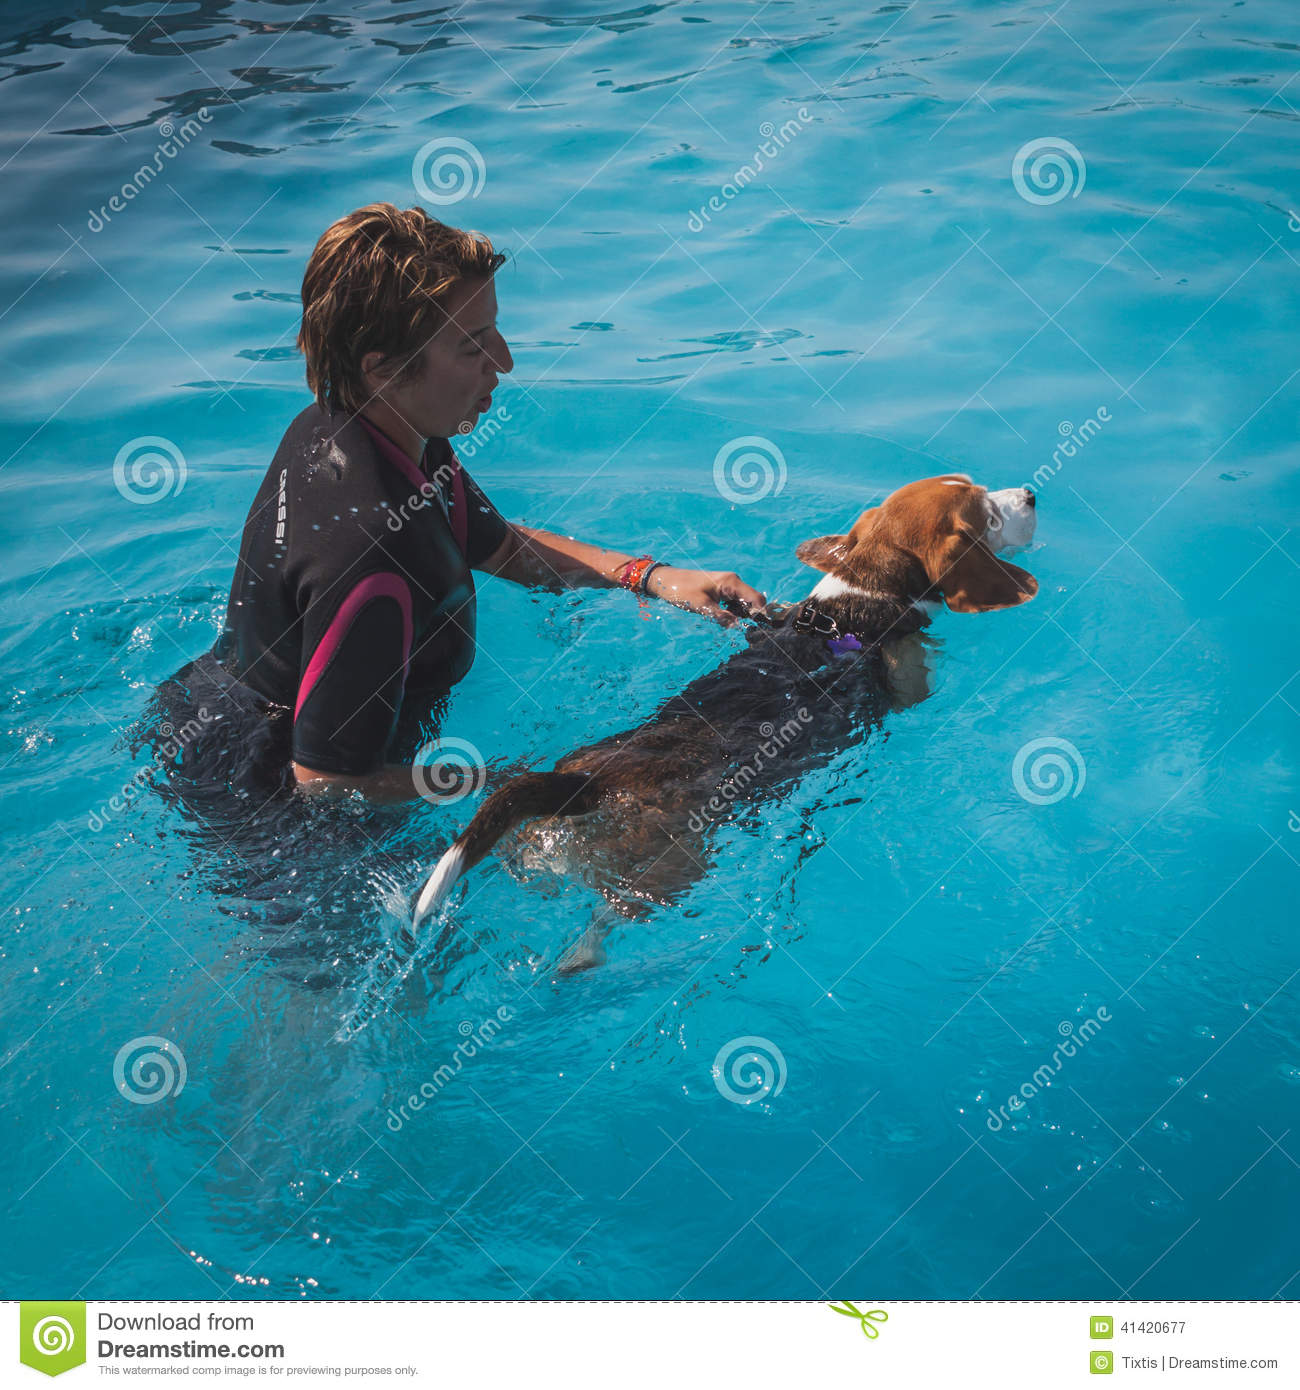 Water training dog editorial photo 21612267 for Swimming pool certification course